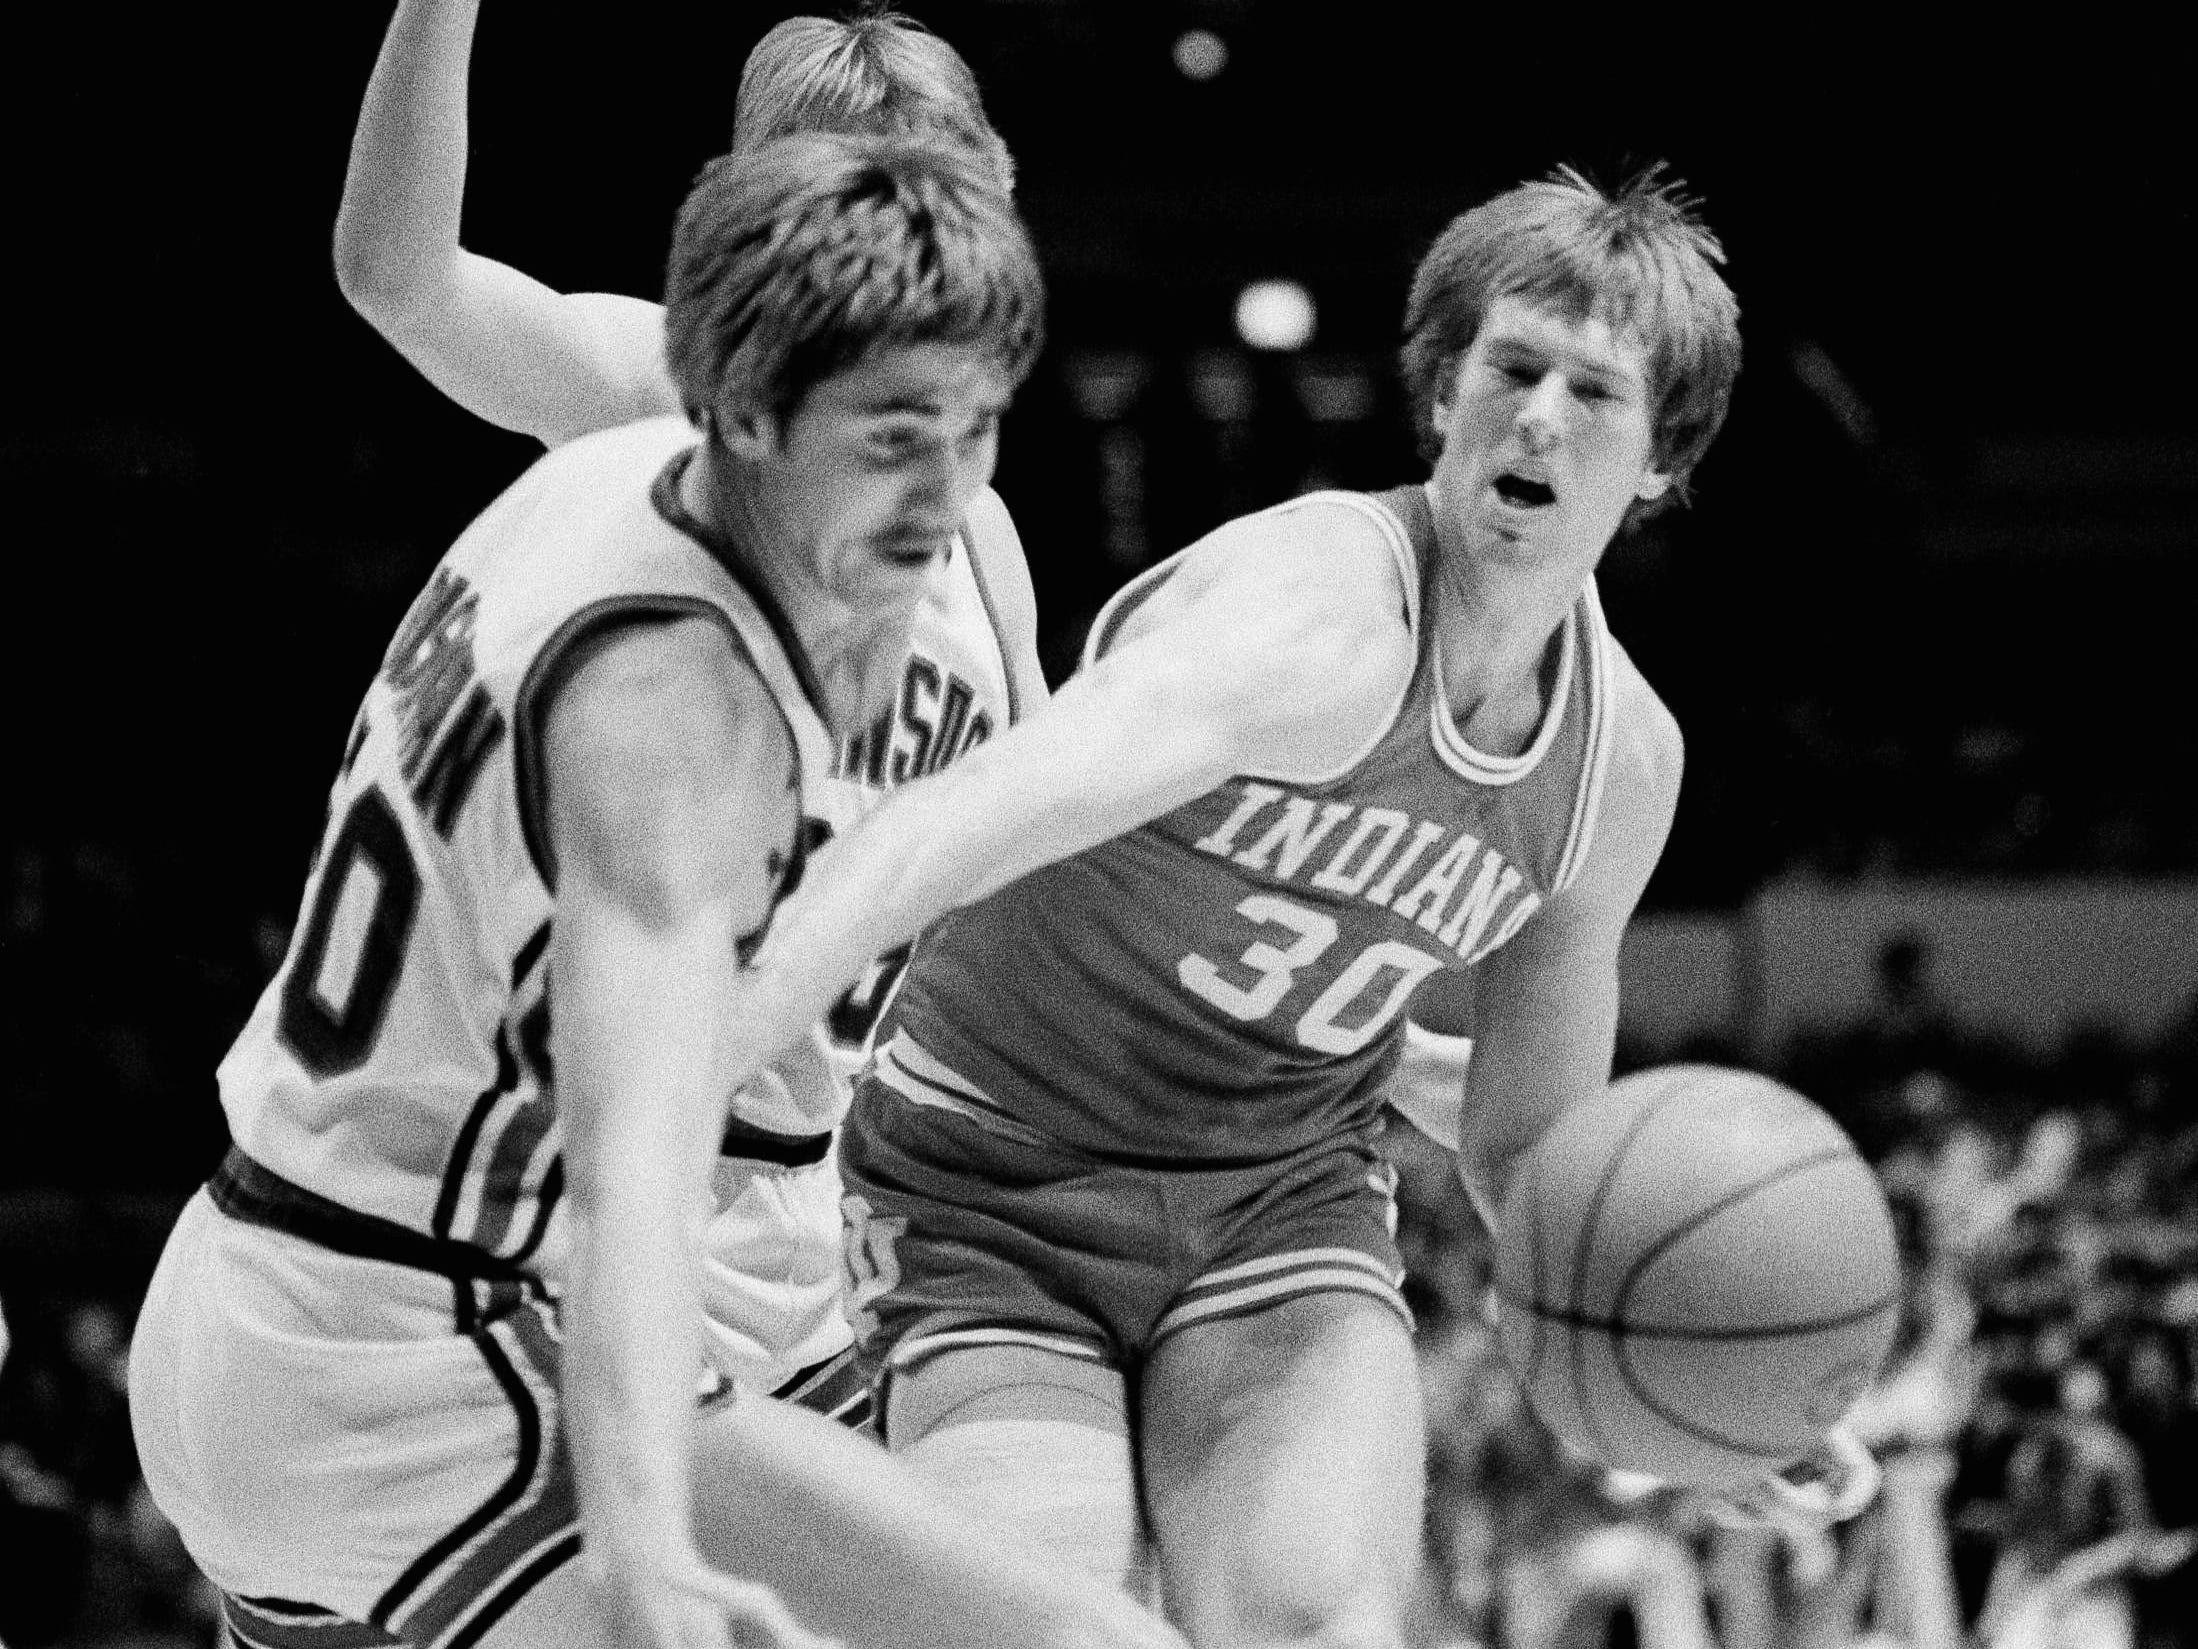 Indiana forward Ted Kitchel finds that he has little room to maneuver thanks to the tight defense of Kansas, center, Jeff Dishman, in the first half of the consolation game of the ECAC Holiday Festival at New York's Madison Square Garden December 29, 1981.